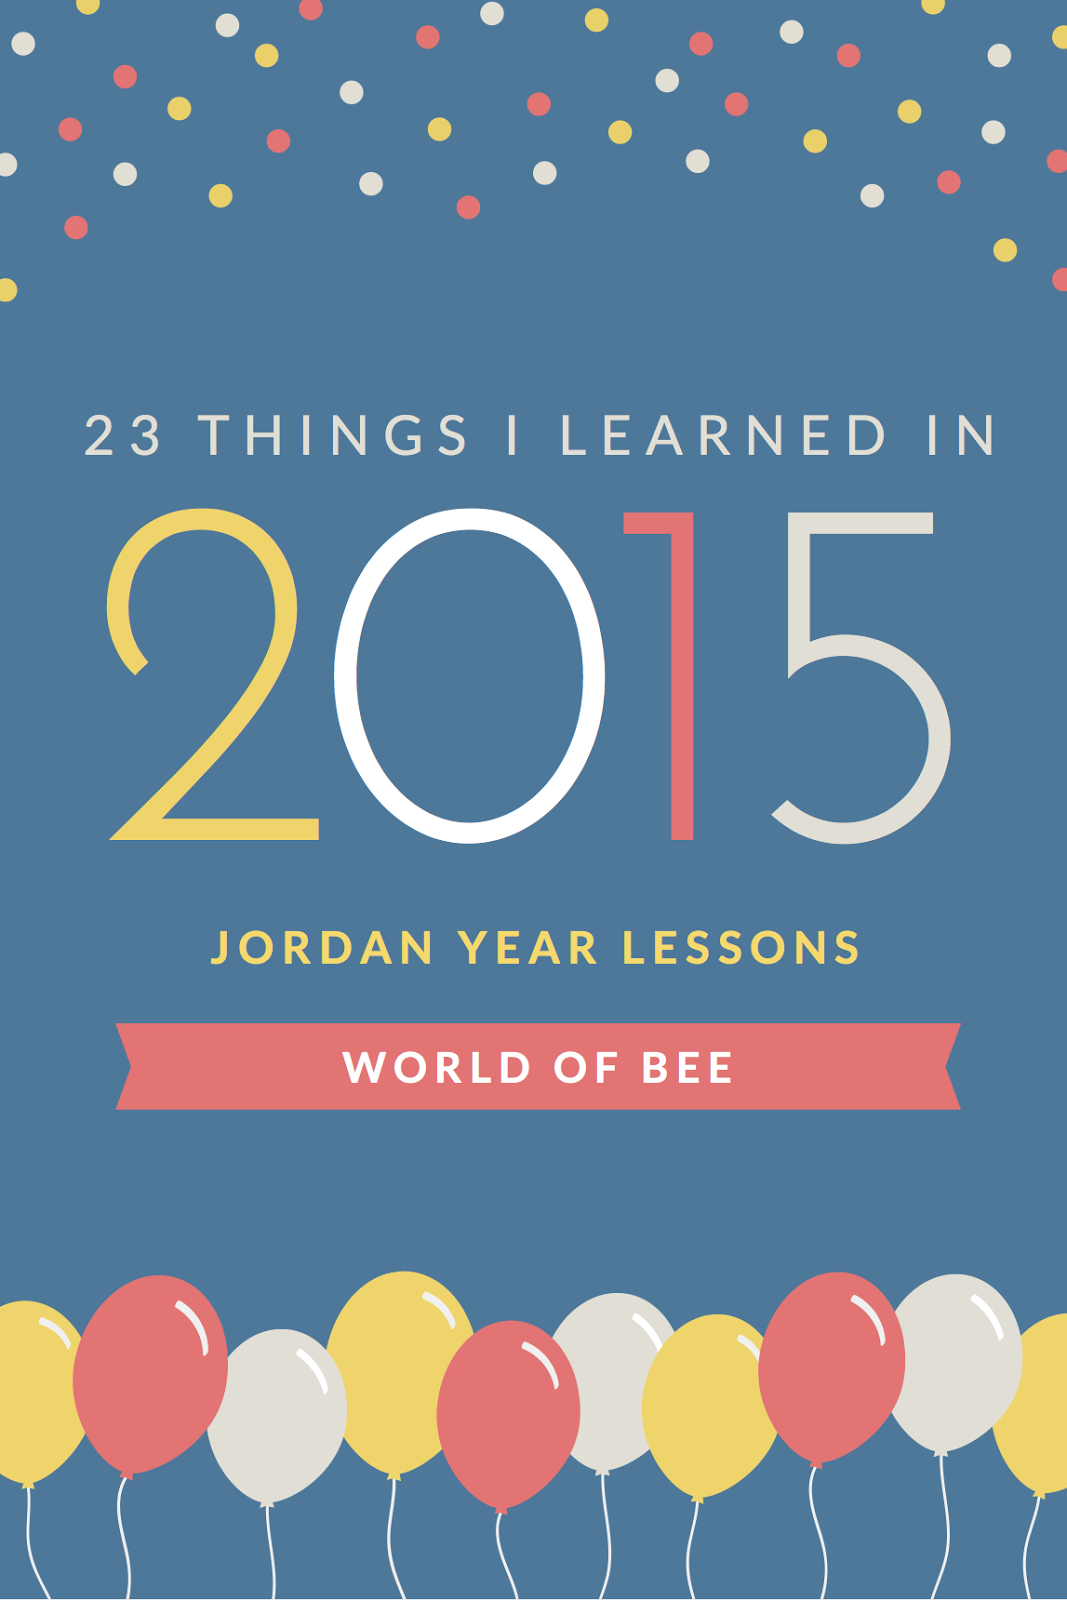 23 Things I learned in 2015